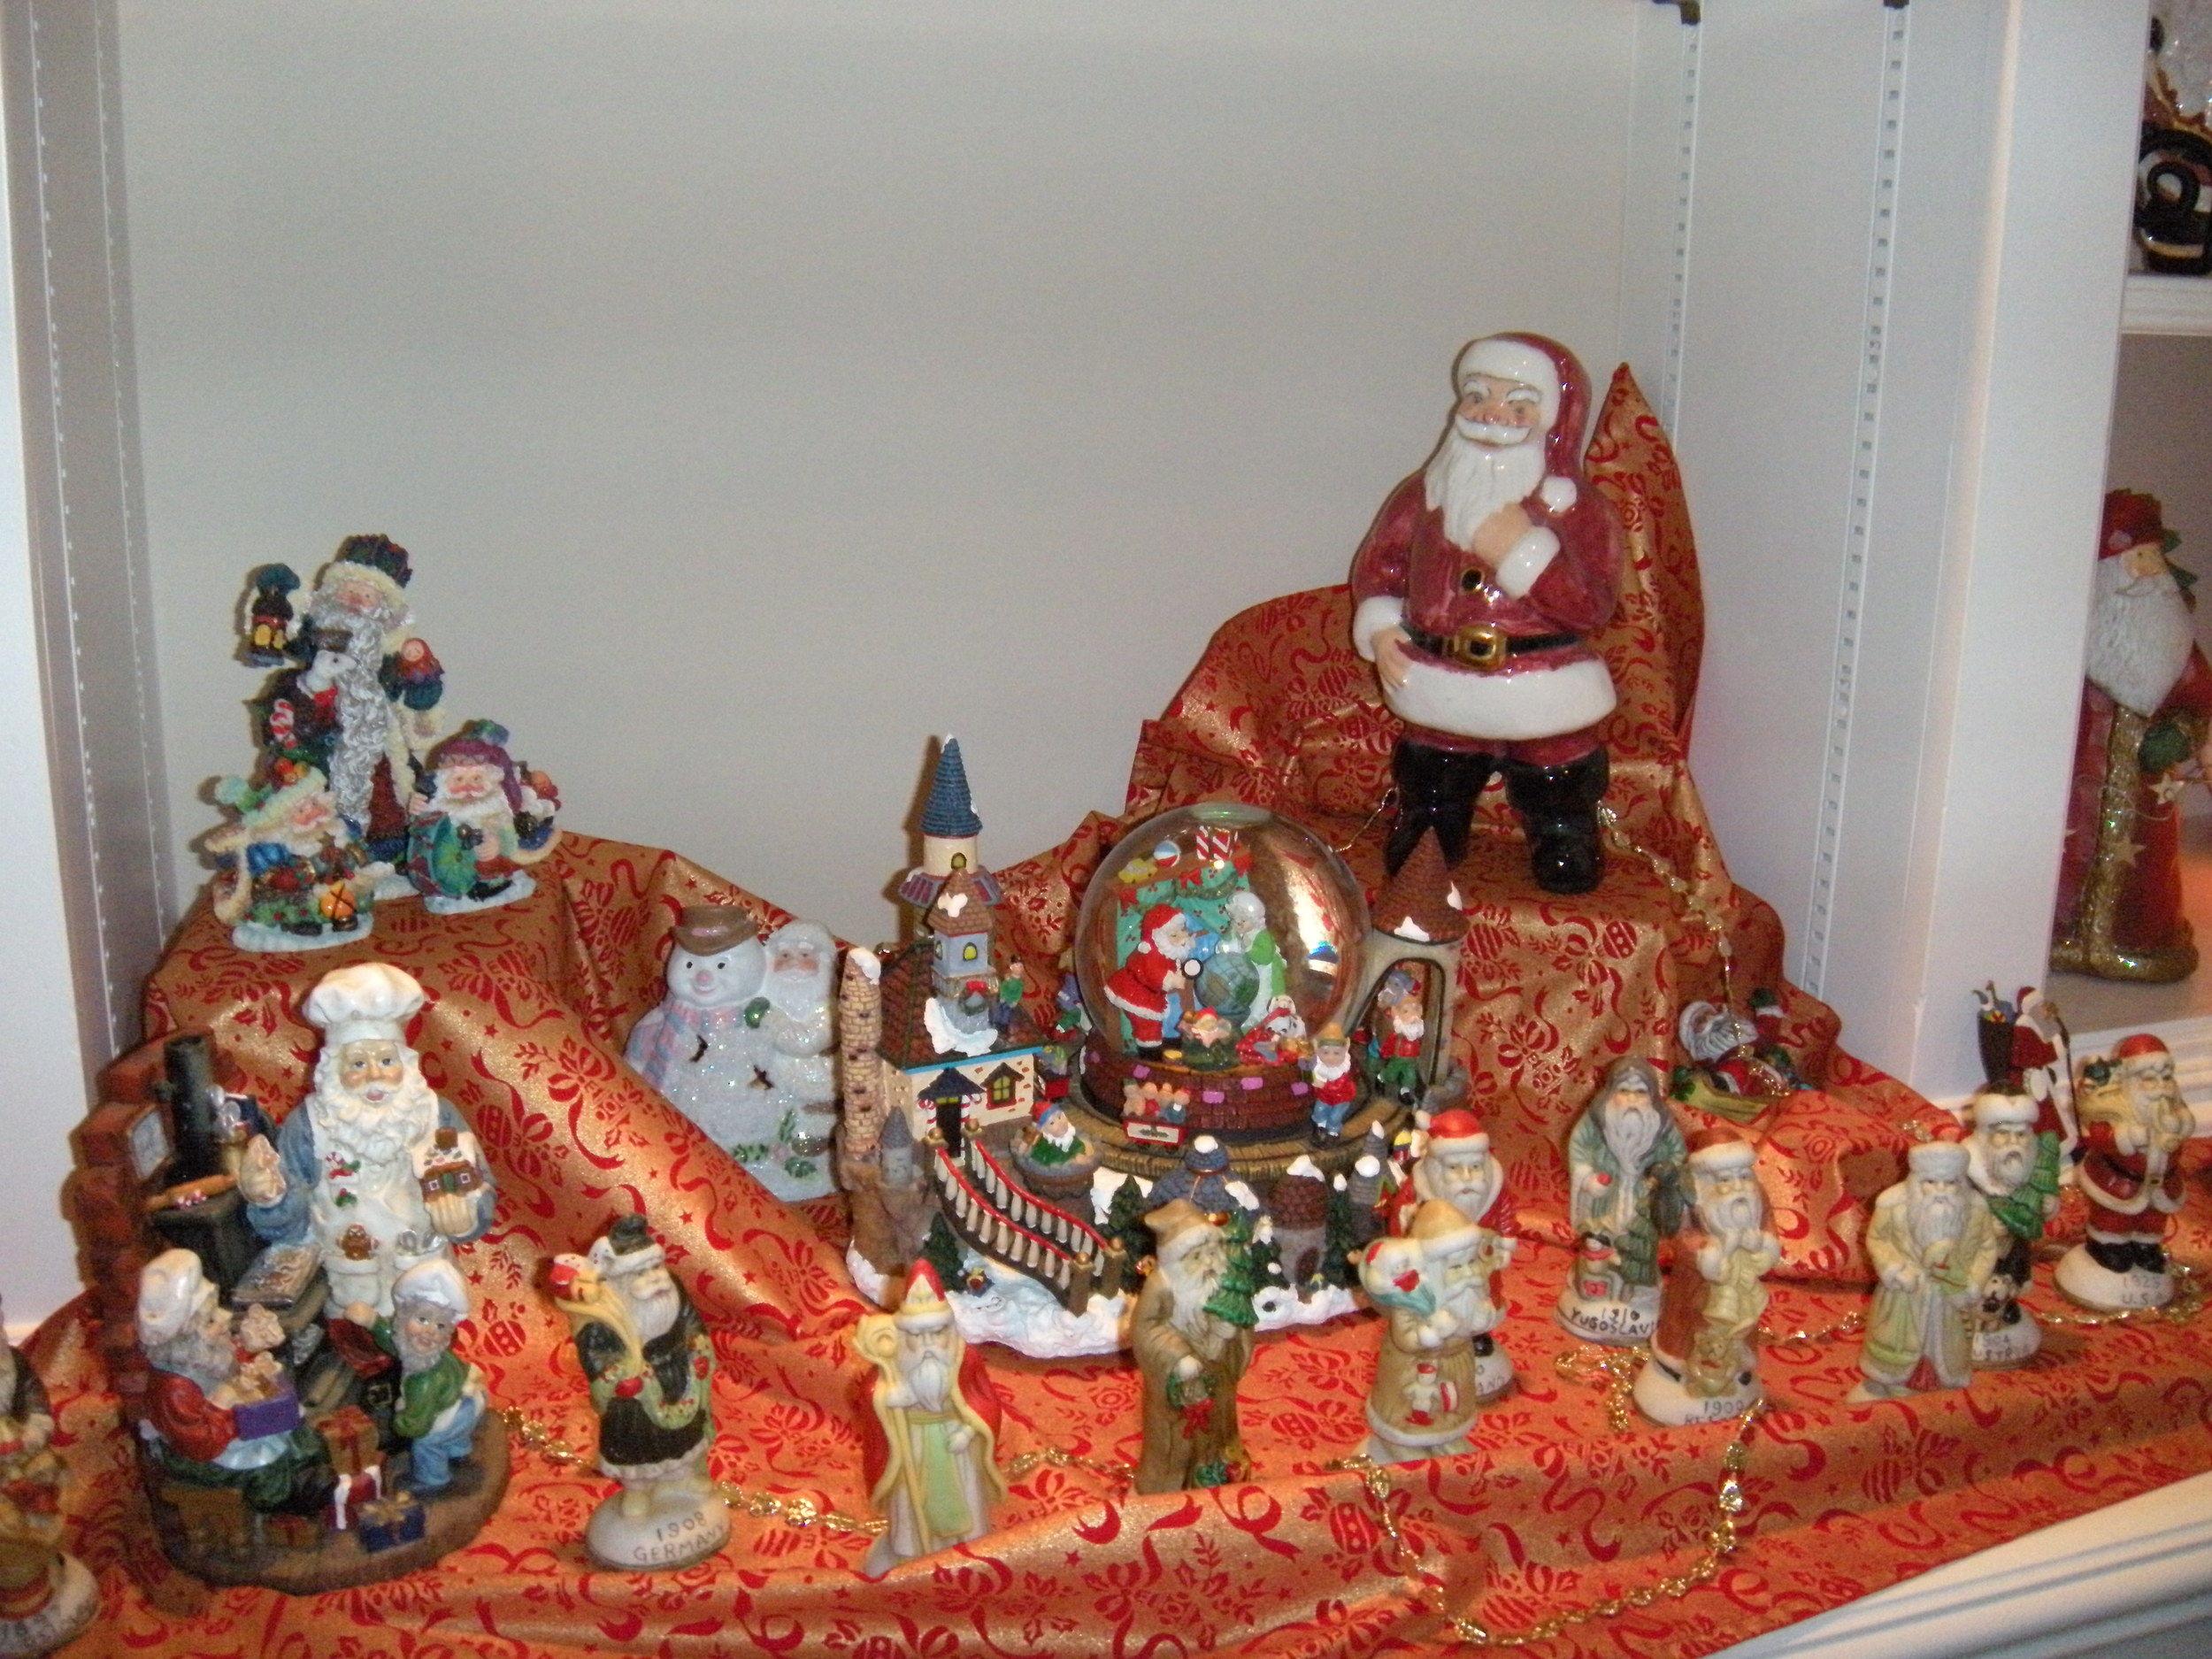 Look at the Santas--and this isn'teven all of them. The smaller ones are from the 1940's and represent Santas from all over the world at that time.